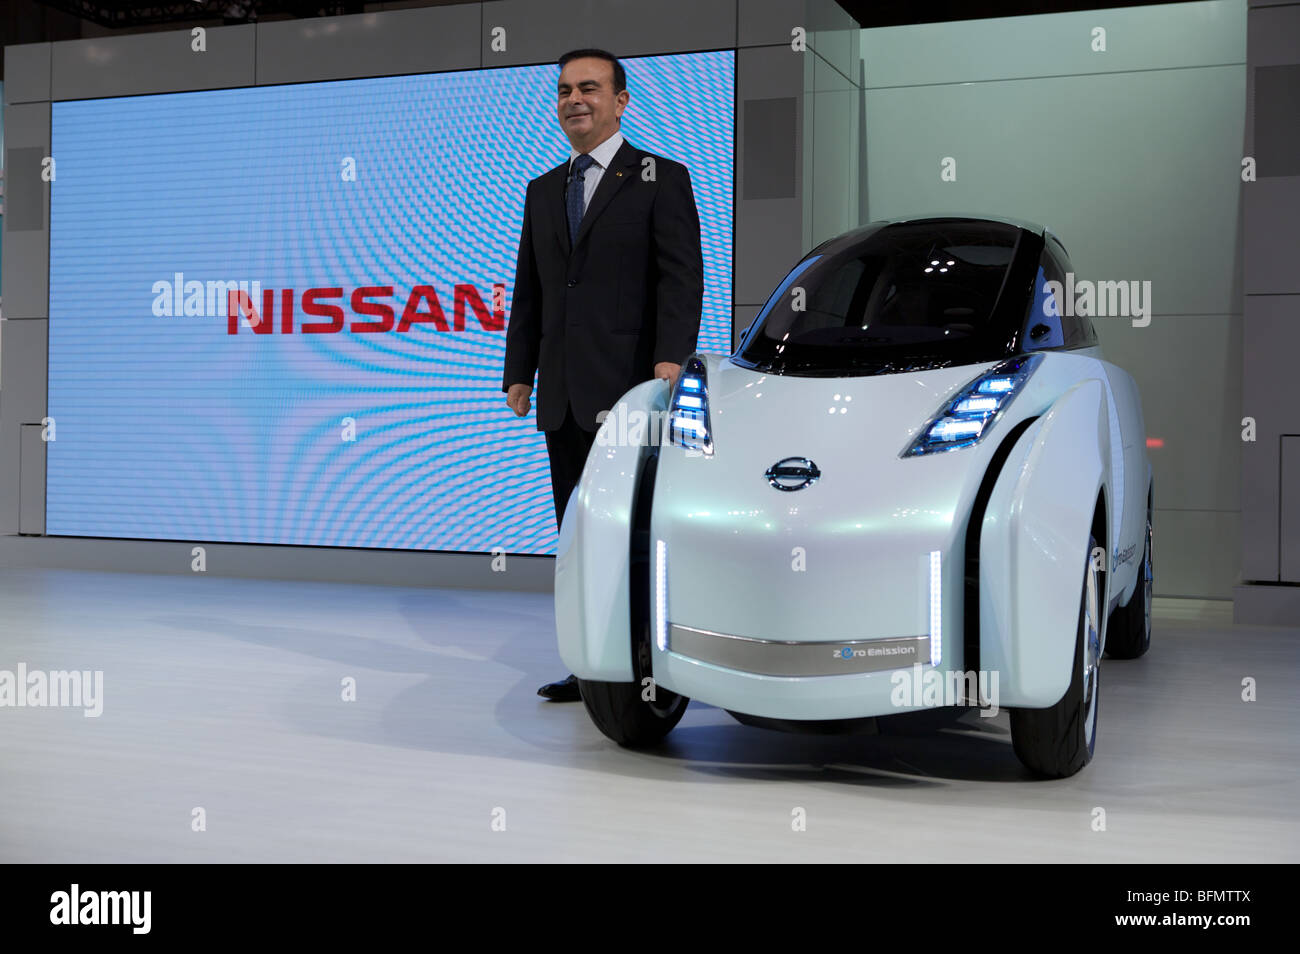 Carlos Ghosn CEO of Nissan presents the new Nissan Land Glider at the 2009 Tokyo Motor Show. - Stock Image